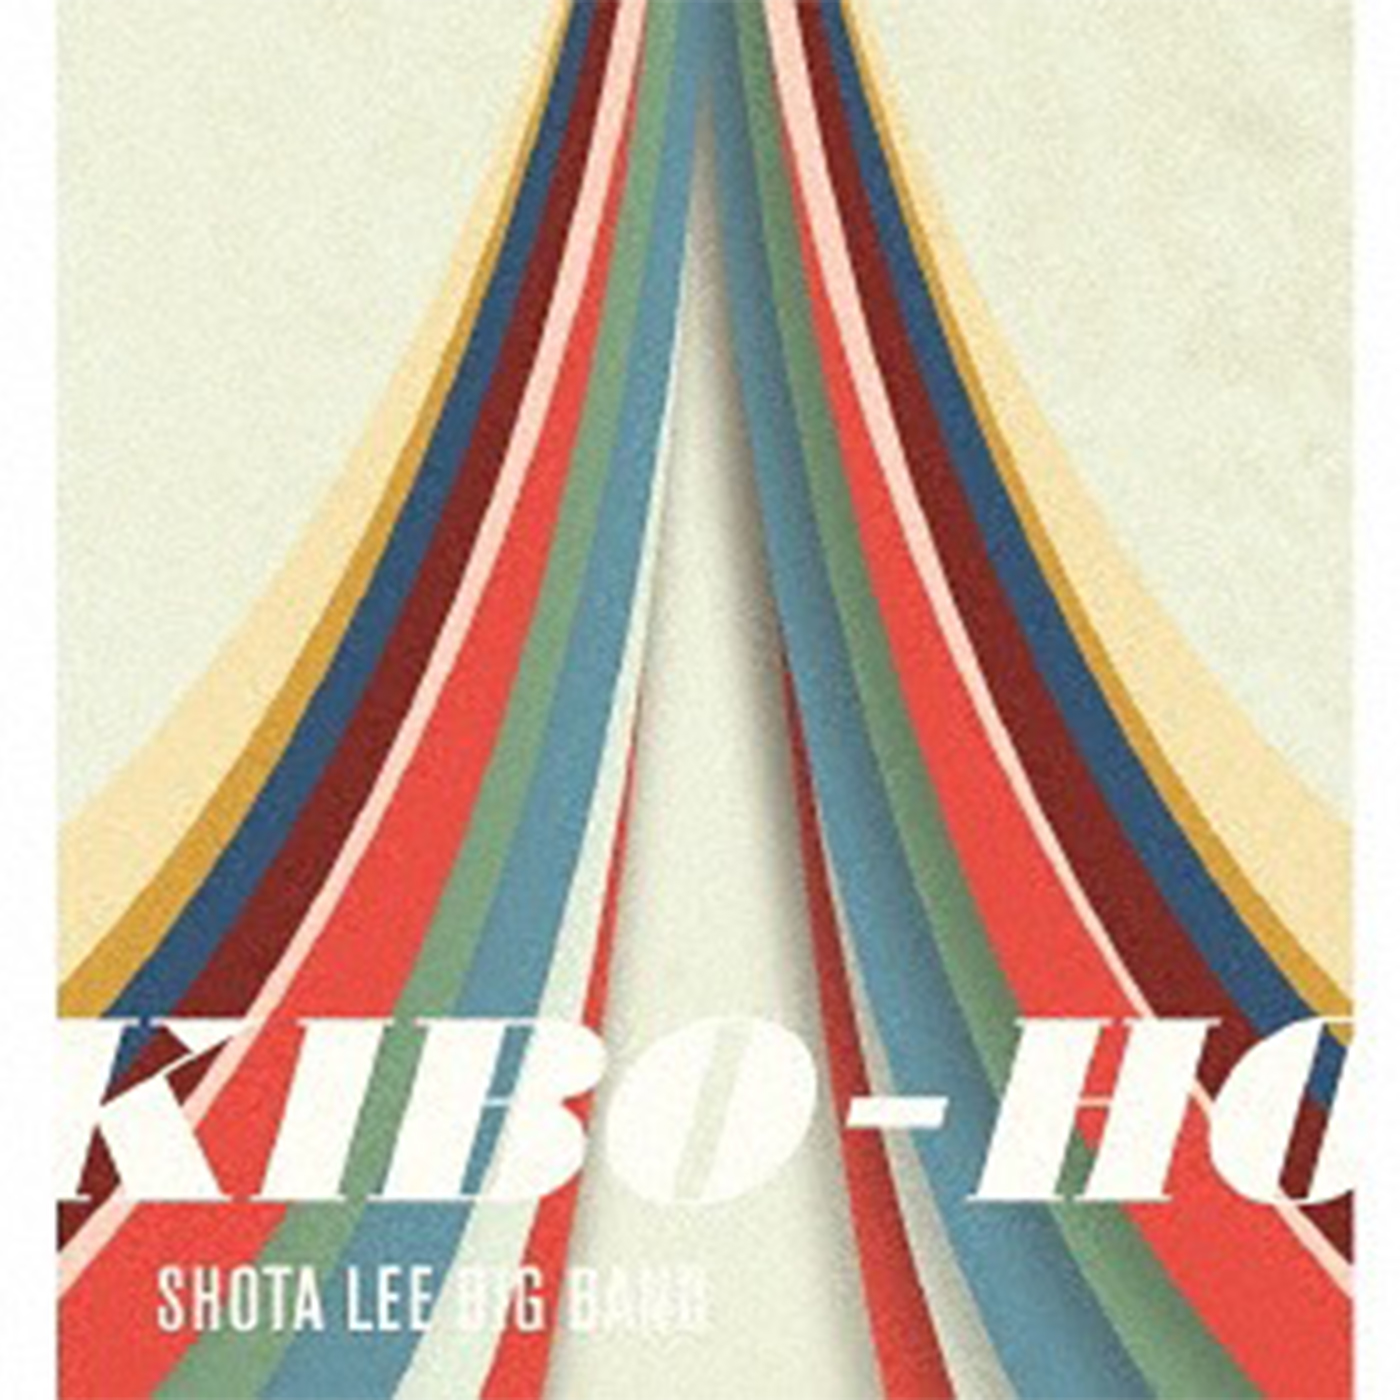 Upcoming big band release of pianist, composer, arranger Shota Lee.